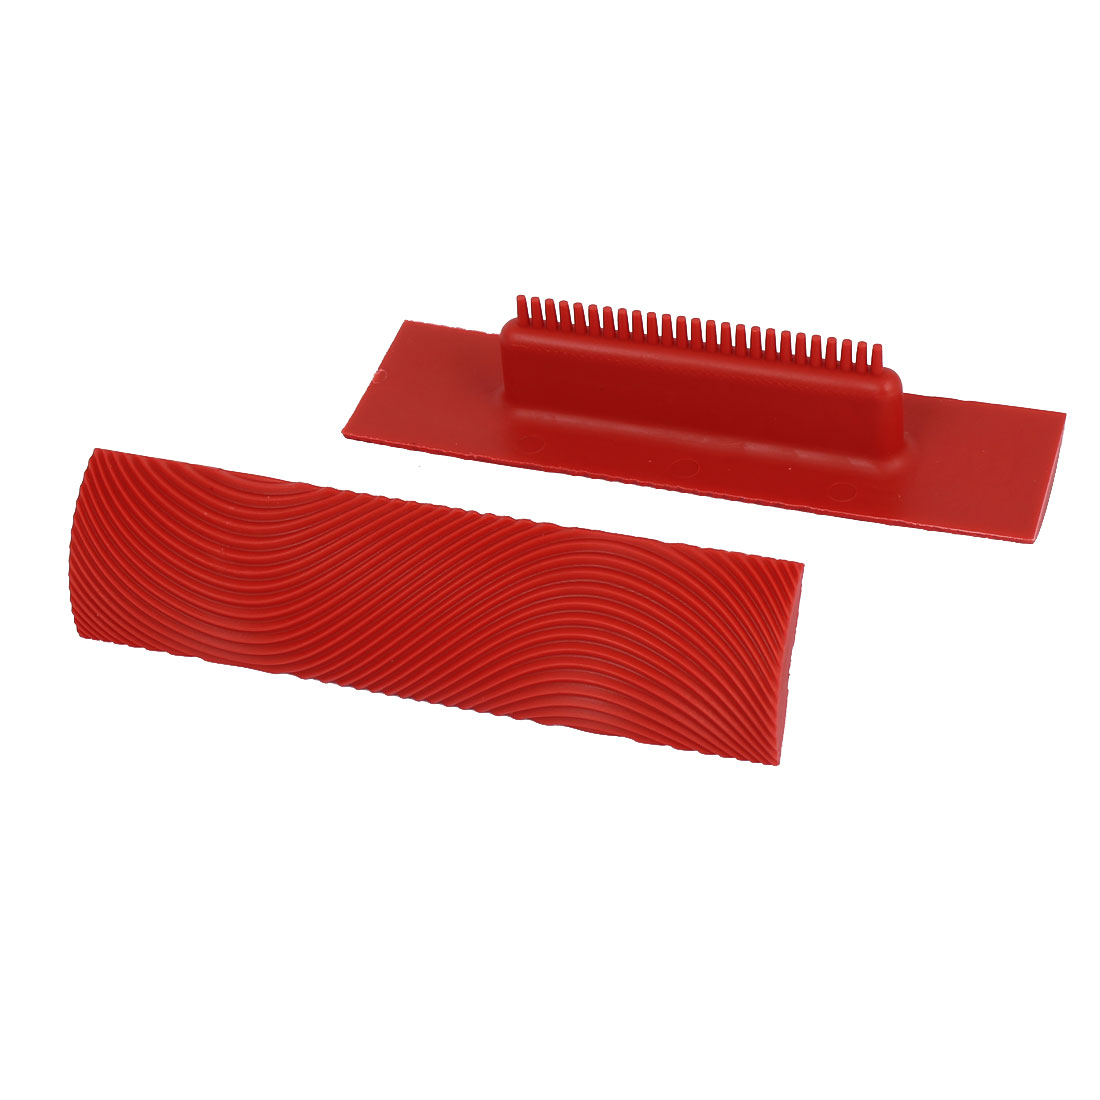 MS9 Home Household Wall Art Paint Rubber Wood Graining DIY Tool 6 Inch Red 2pcs